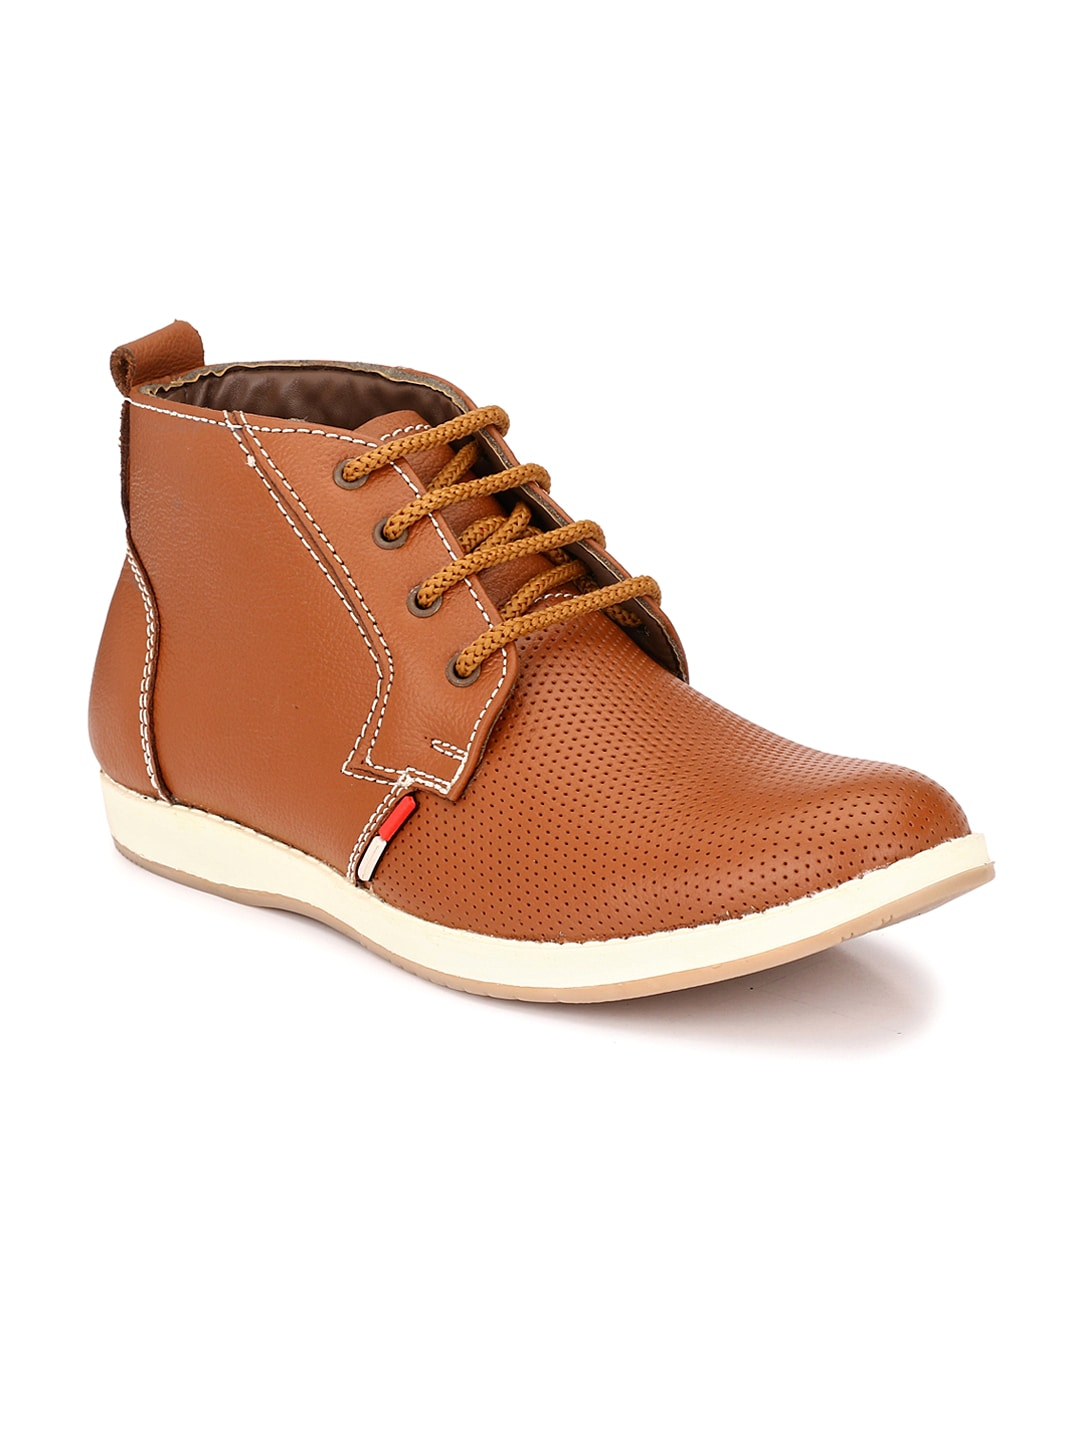 John Karsun Men Tan Brown Leather Mid-Top Flat Boots image